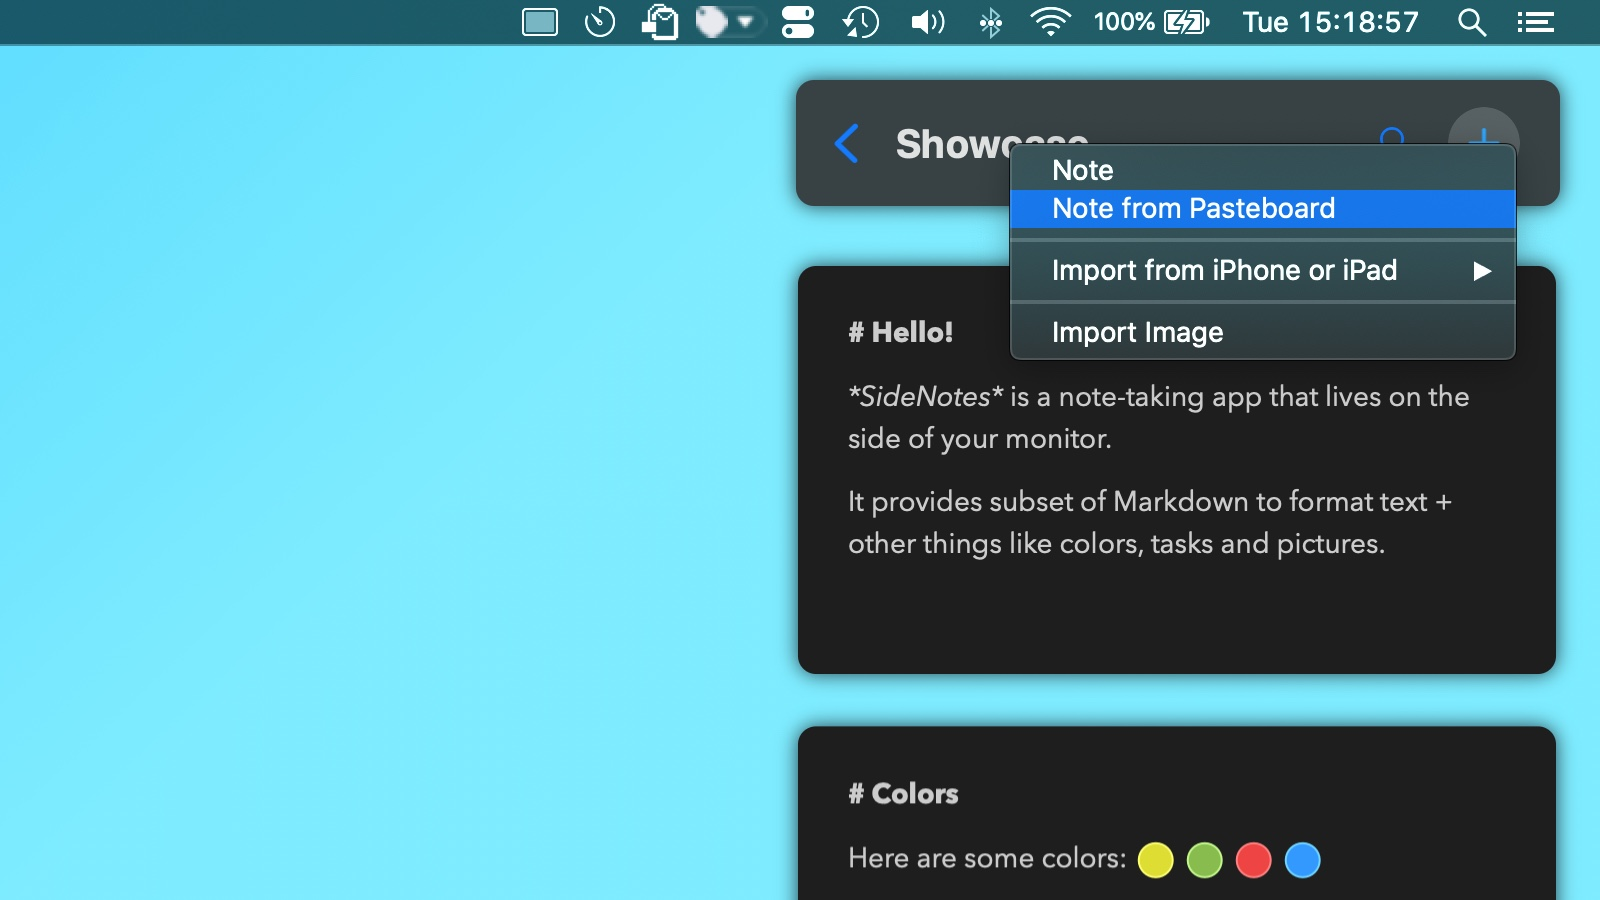 How to Add a Note From Pasteboard?